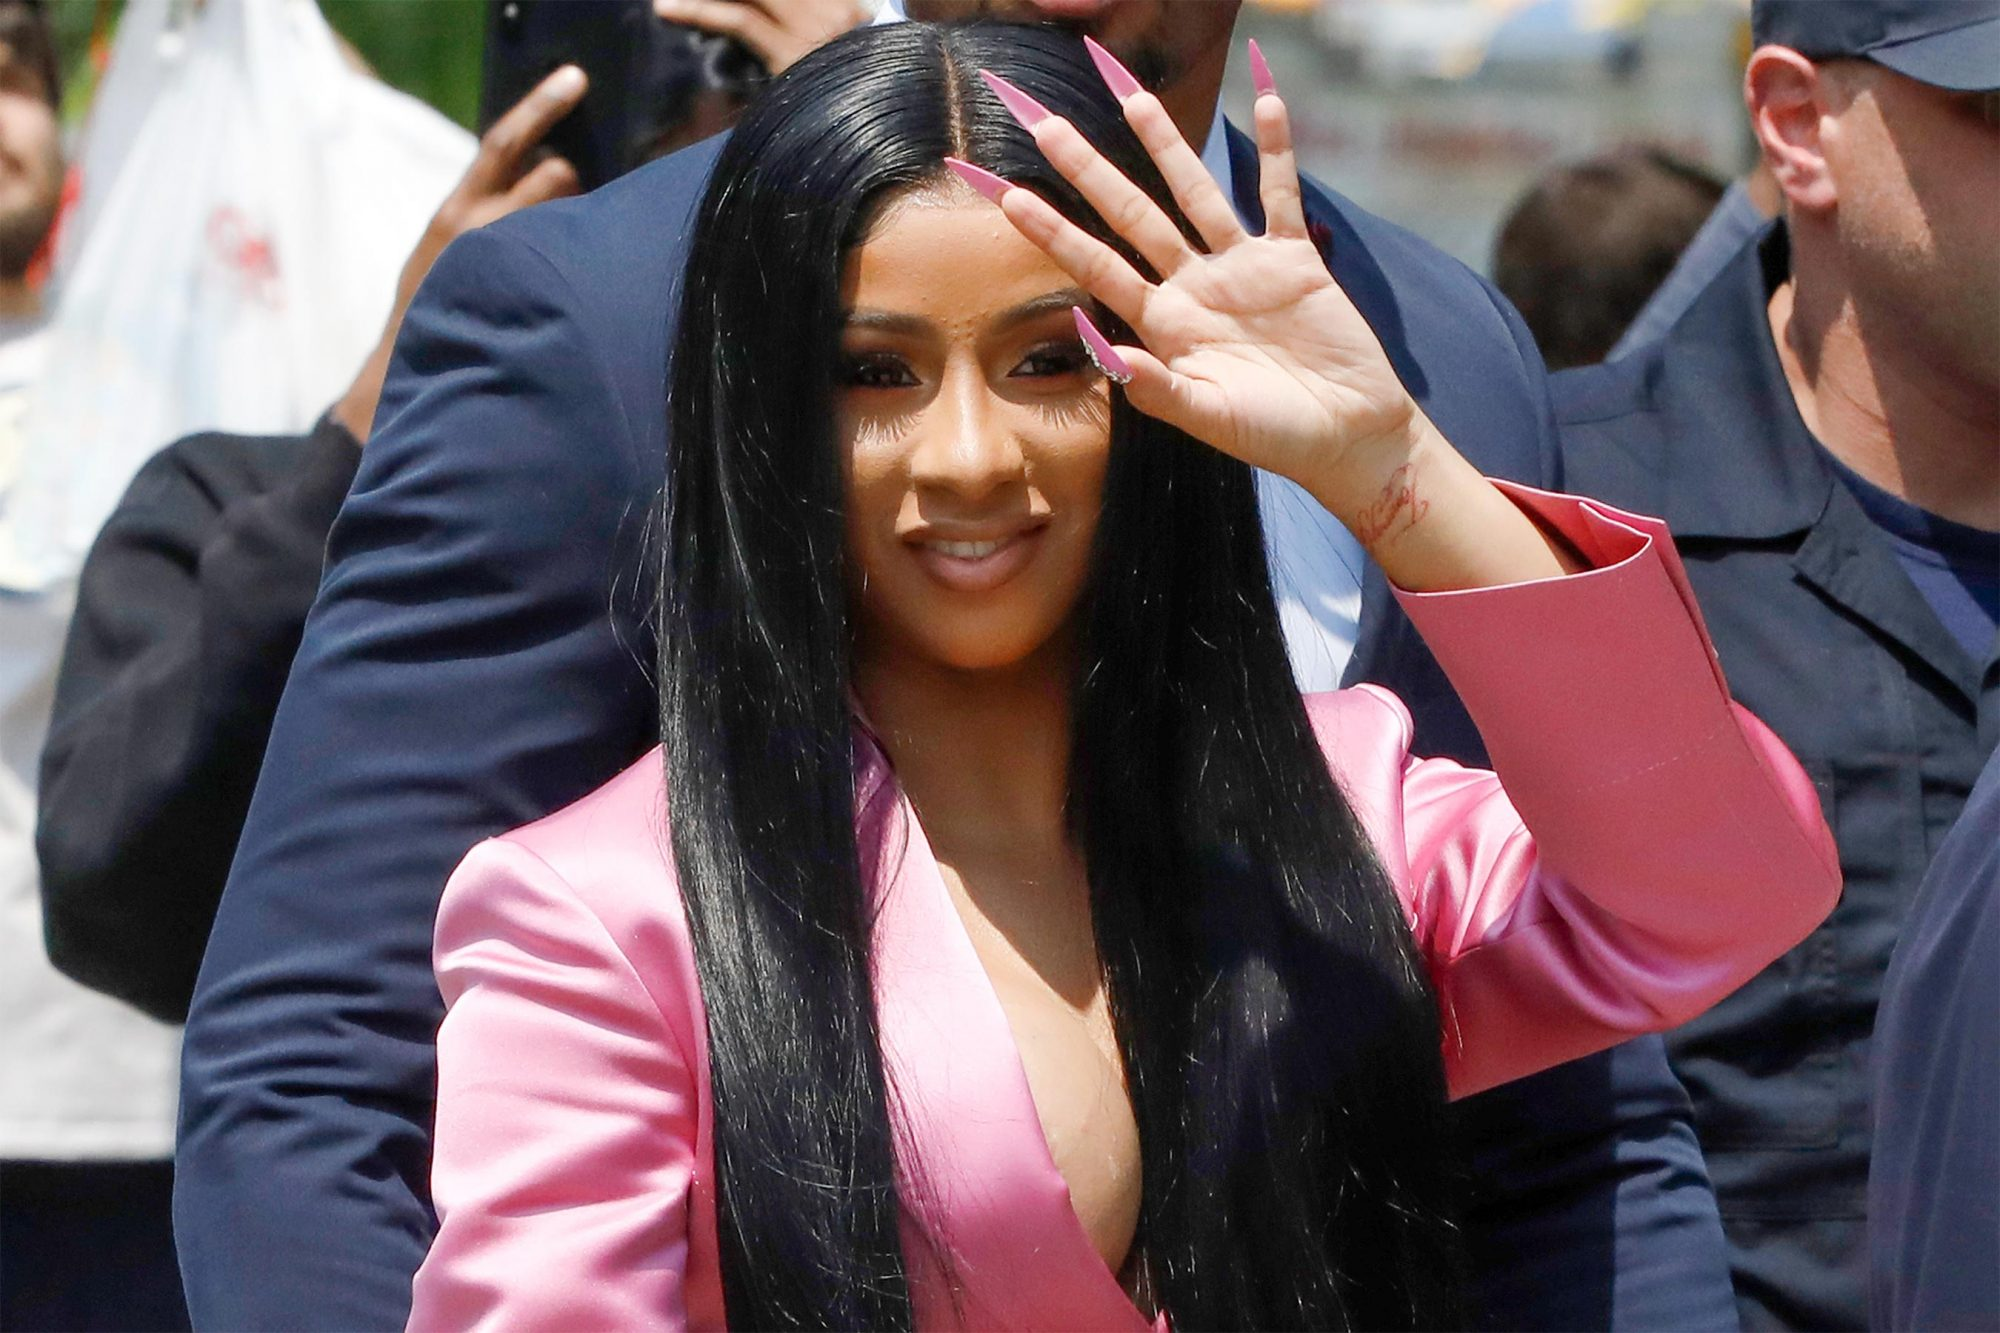 Mandatory Credit: Photo by Mark Lennihan/AP/Shutterstock (10265493c) Cardi B arrives at Queens Criminal Court, in New York. Police say Cardi B, whose real name is Belcalis Almanzar, and her entourage were at a nightclub last fall when she argued with a bartender. They say a fight broke out in which chairs, bottles and hookah pipes were thrown, slightly injuring the woman and another employee. She has been charged with misdemeanor reckless endangerment and assault Cardi B Strip Club Fracas, New York, USA - 31 May 2019